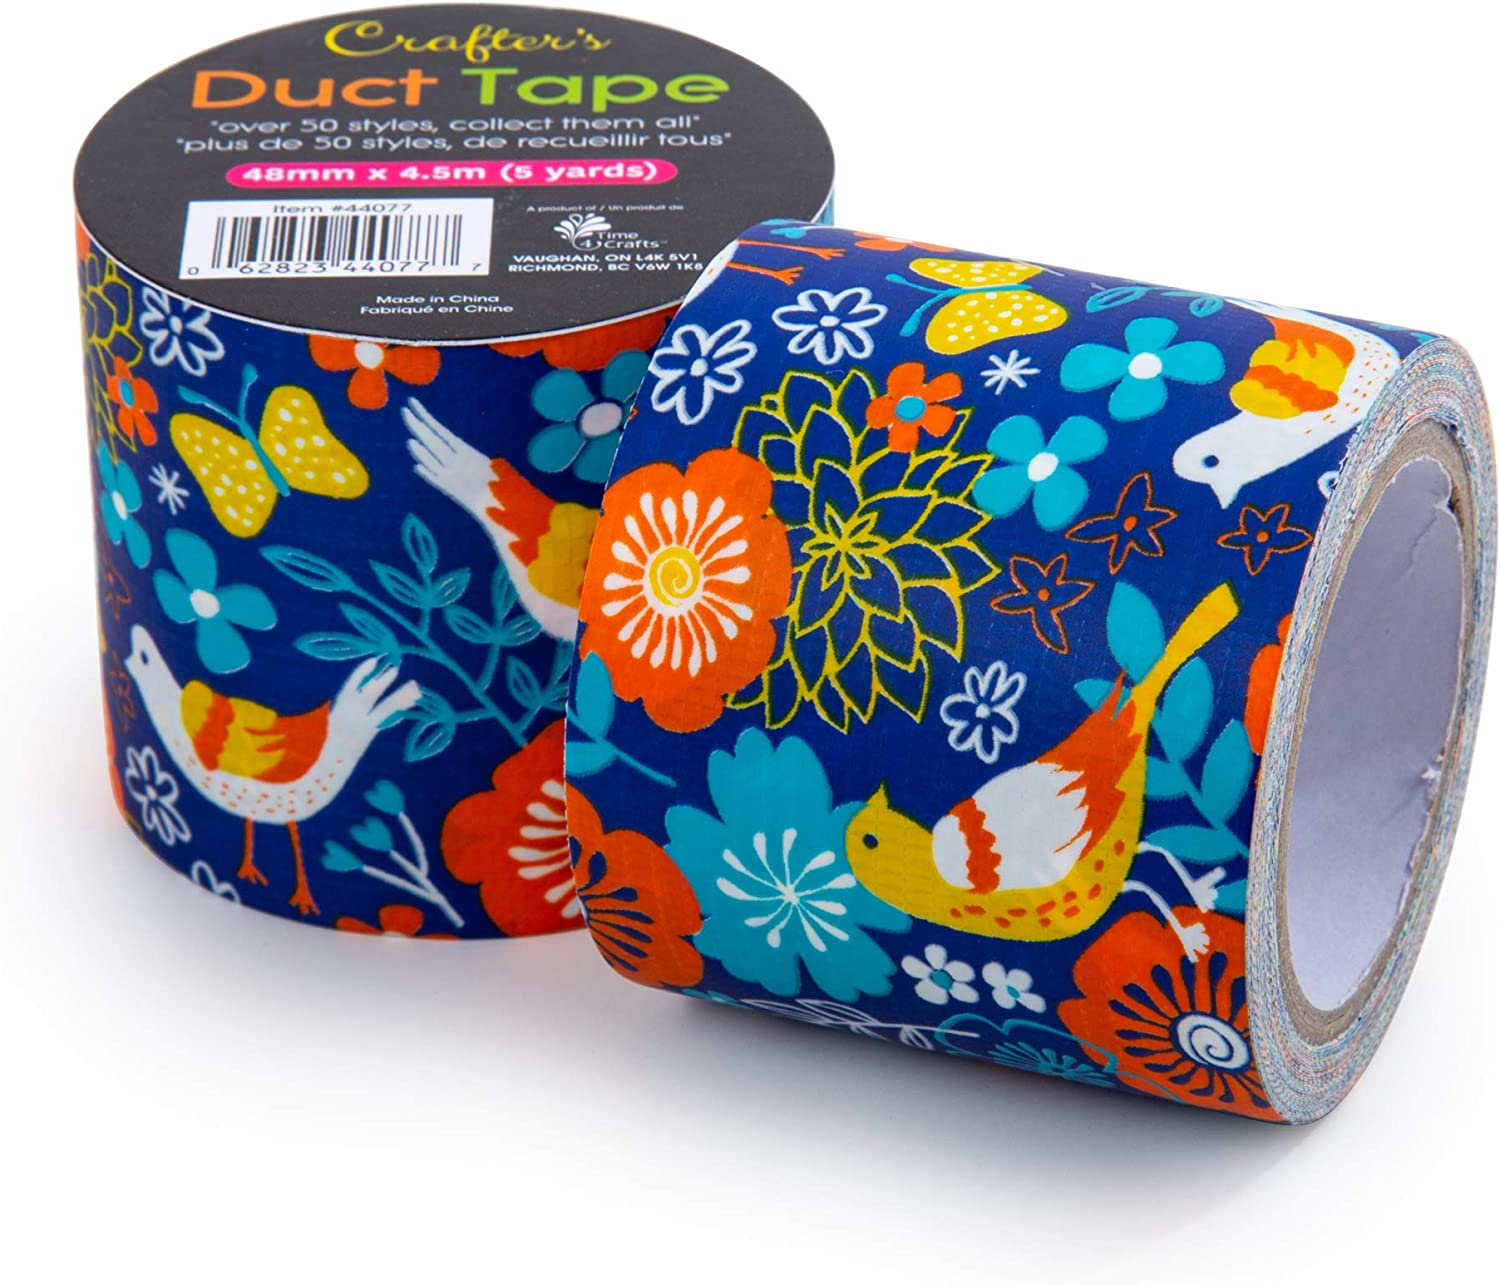 Time 4 Crafts Vibrant, 48mm x 4.5-Meter, 6 Pieces Fun Craft Duct Tapes, Blue Nature